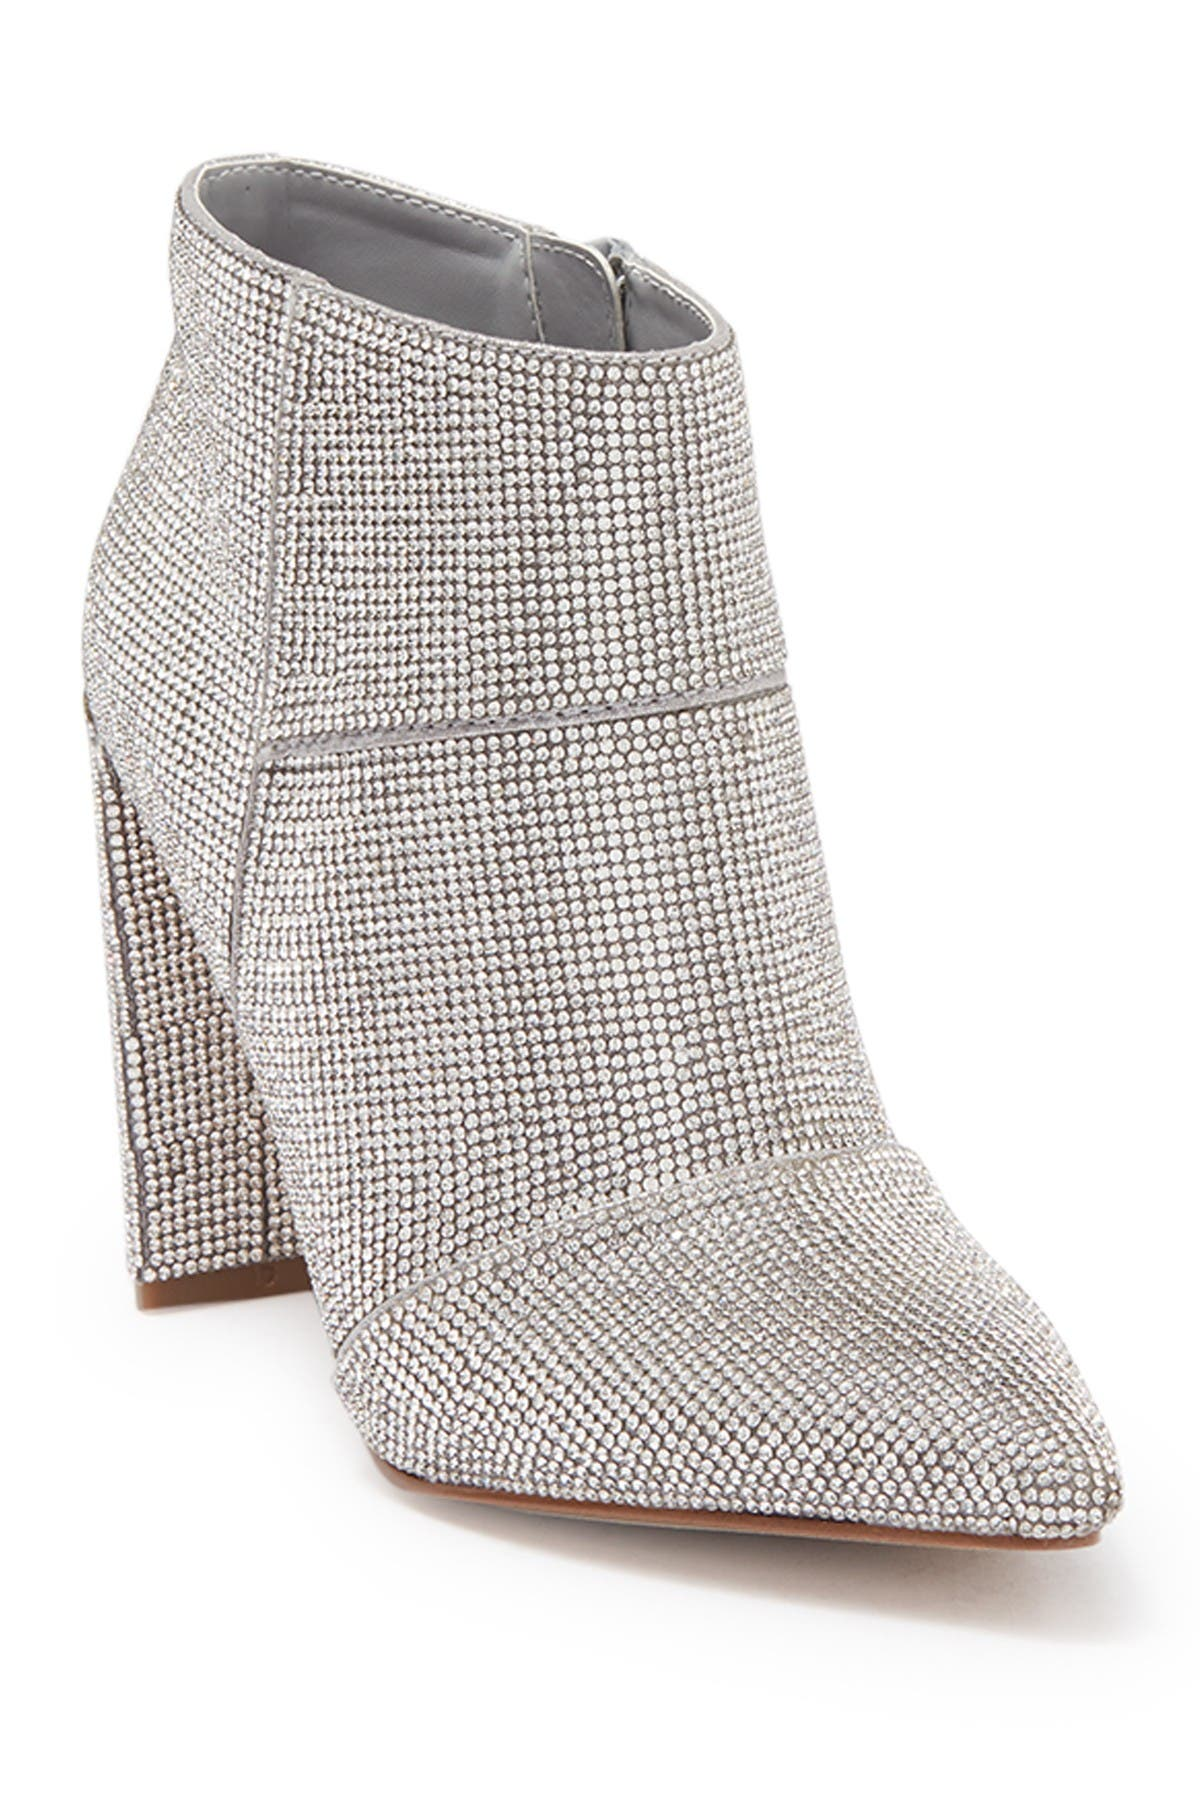 Image of Steve Madden Pieces Embellished Ankle Boot